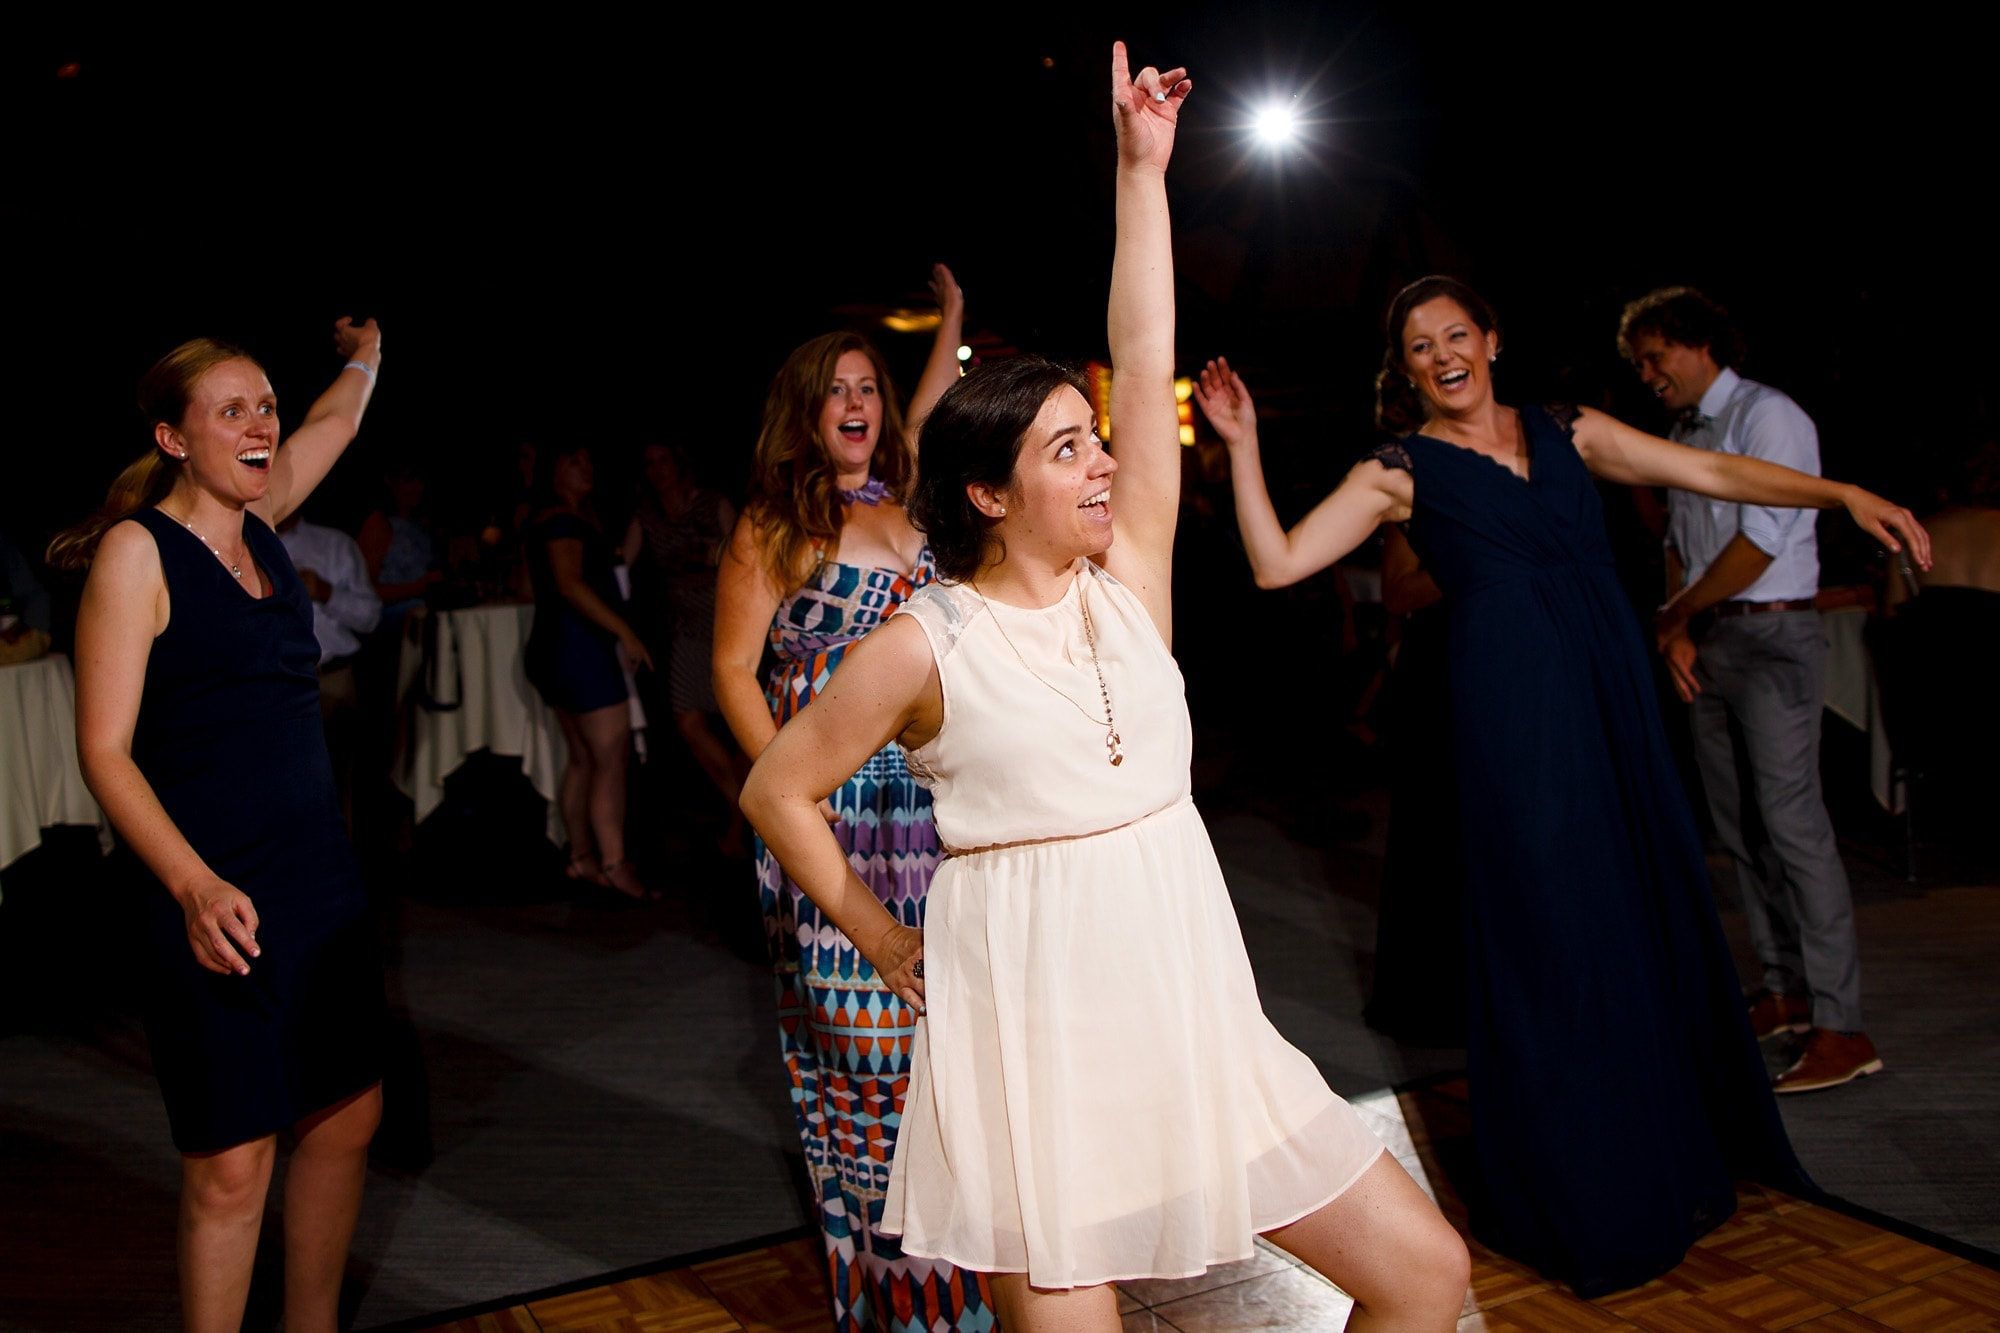 Guests dance at the reception